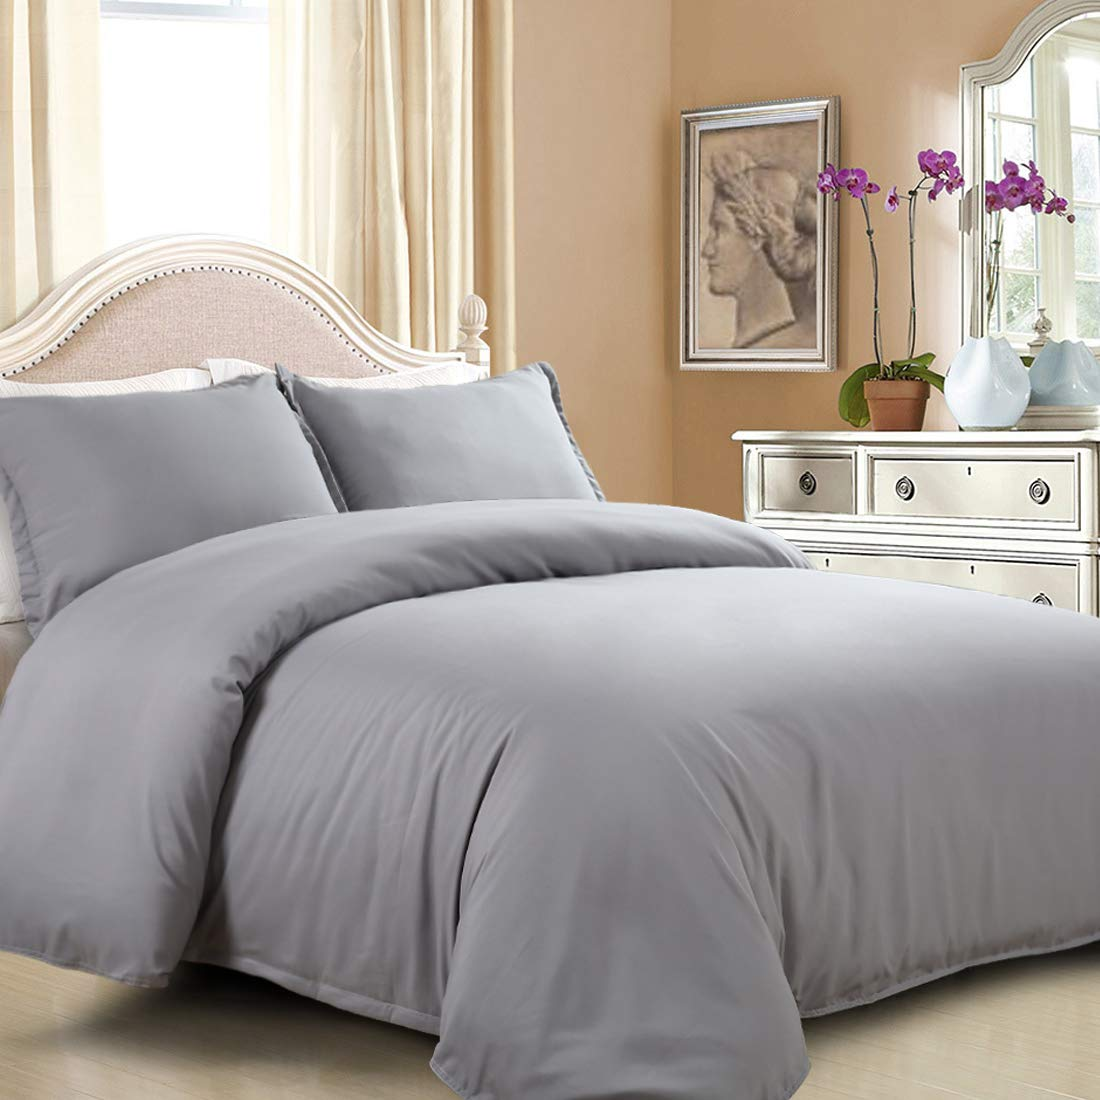 EASELAND Duvet Cover Set Queen,Grey Luxury Soft Bedding Set 3 Pcs-1 Soft Microfiber Duvet Cover Matching 2 Pillowcase Wrinkle, Fade, Stain Resistant.(Without Duvet and Pillow)